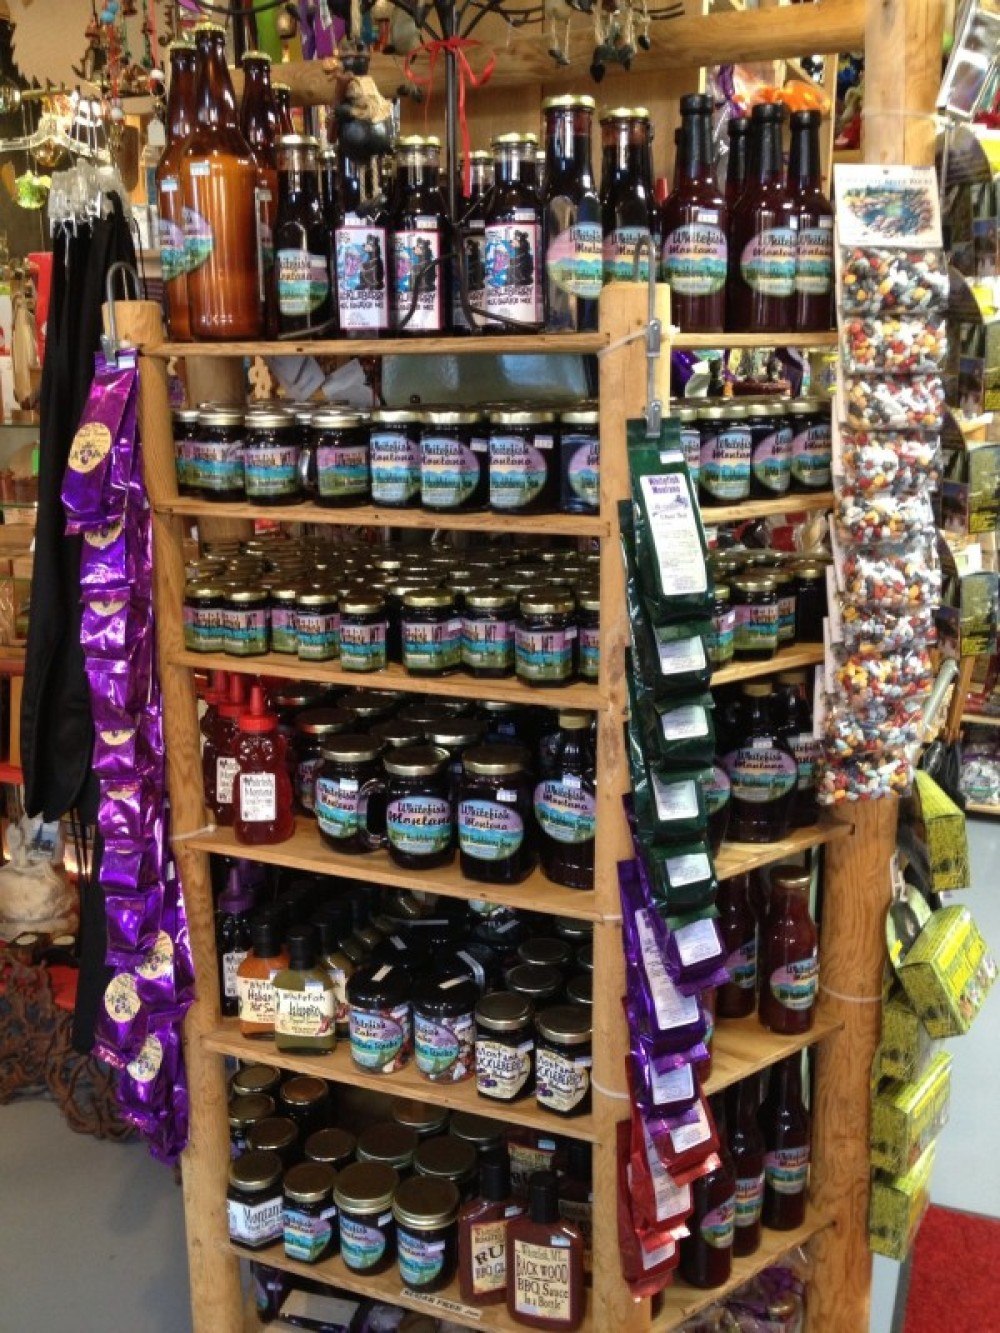 Huckleberry Products with our custom Whitefish label!